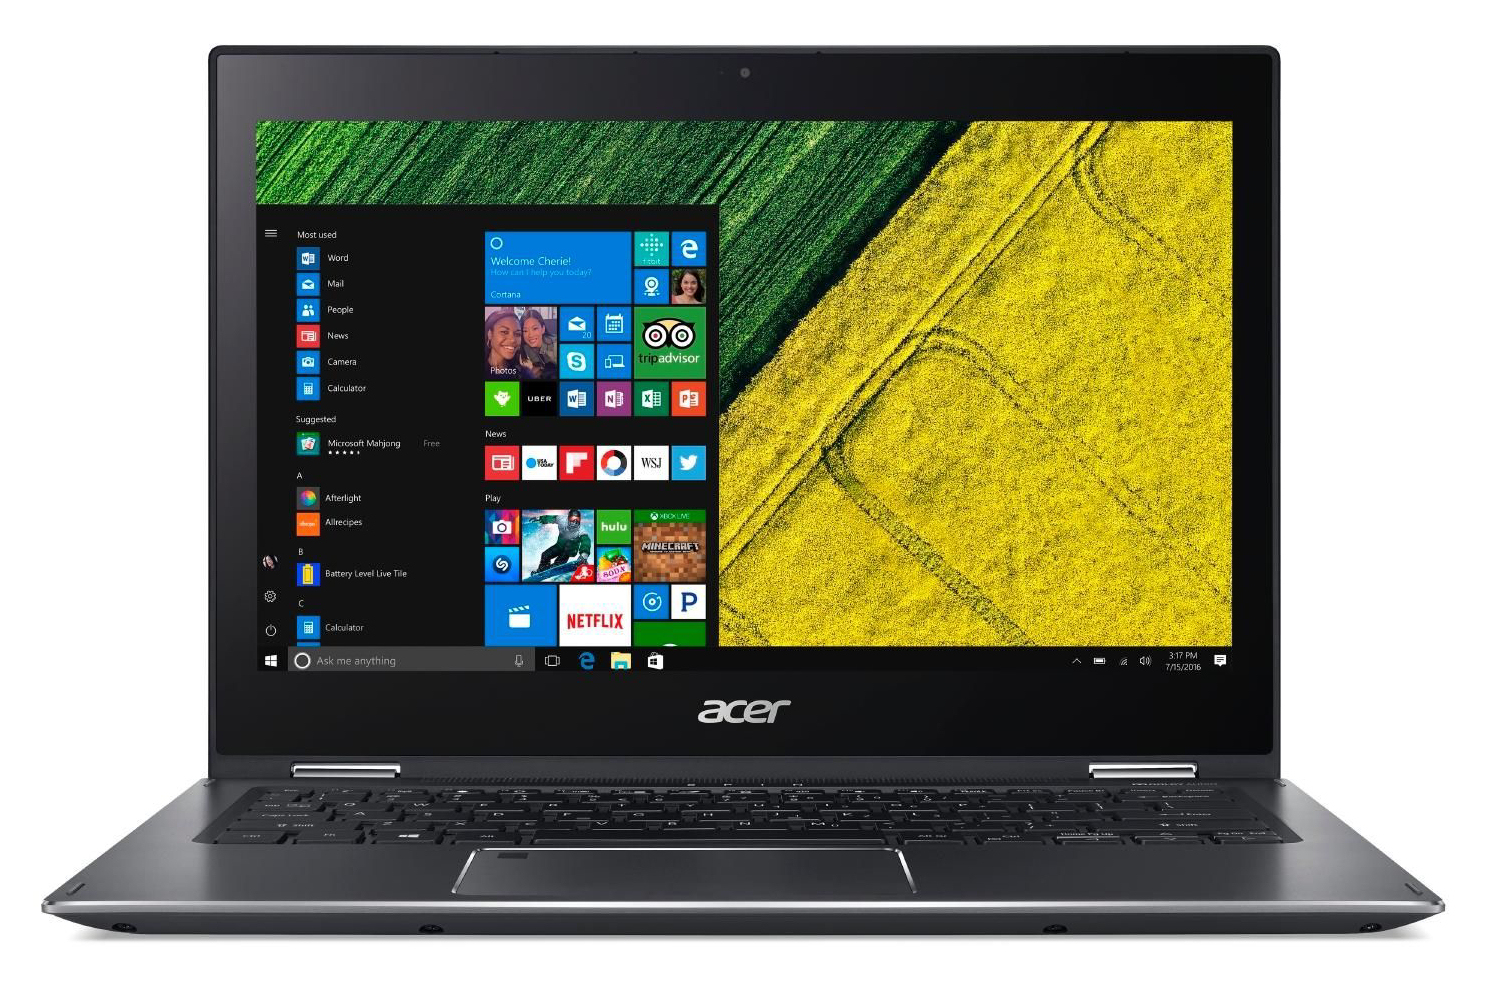 ACER SP513-52NP WINDOWS 7 X64 DRIVER DOWNLOAD